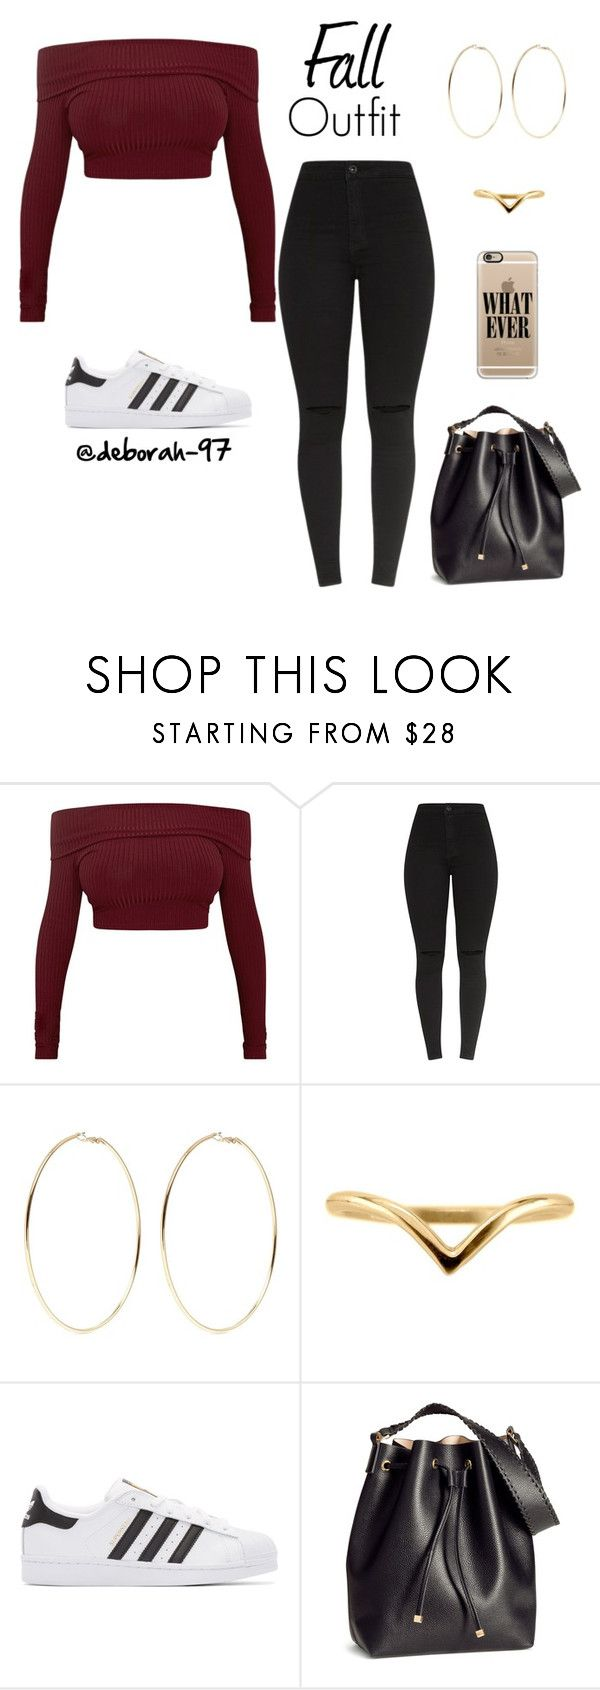 """Fall Outfit #15"" by deborah-97 ❤ liked on Polyvore featuring Kenneth Jay Lane, adidas Originals, H&M and Casetify"